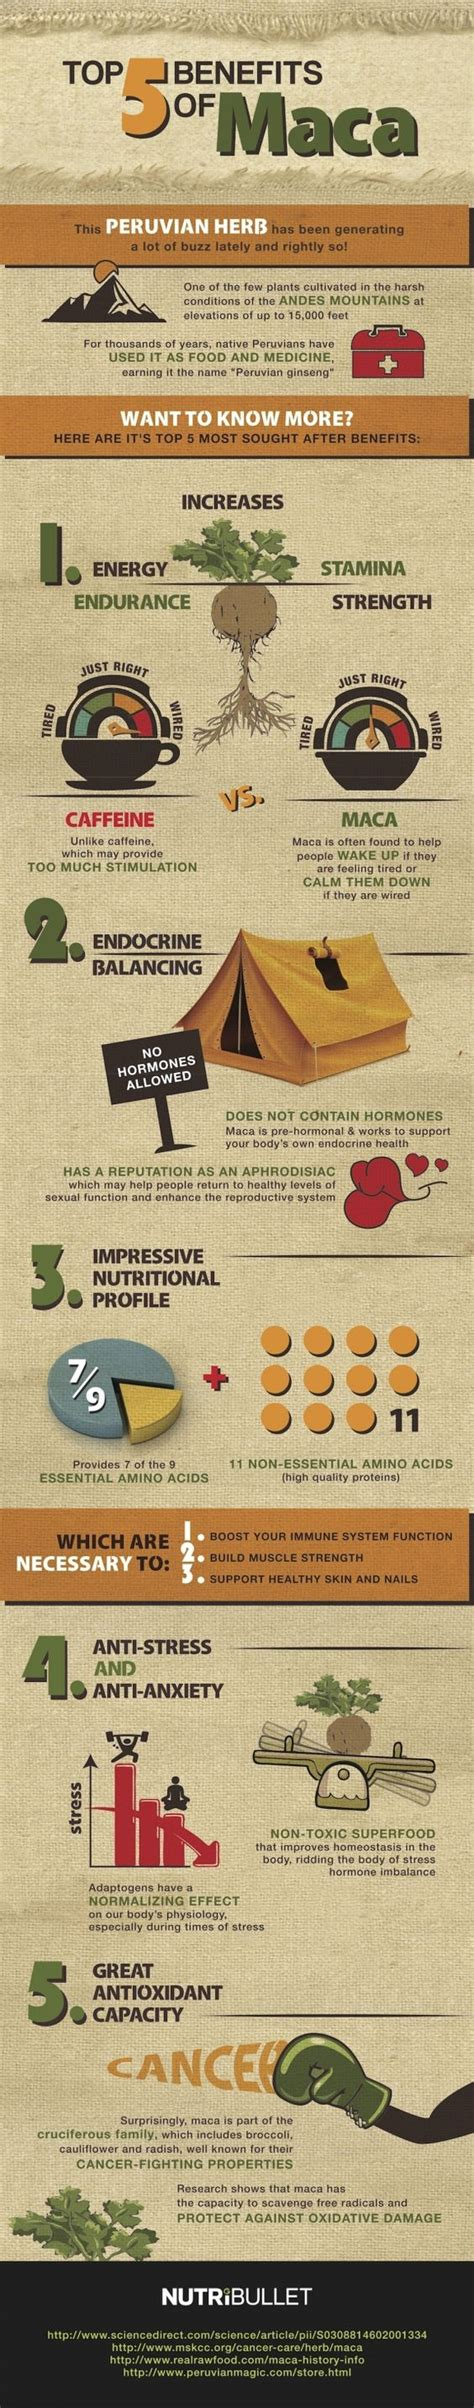 best maca top 5 benefits of maca infographic health tips